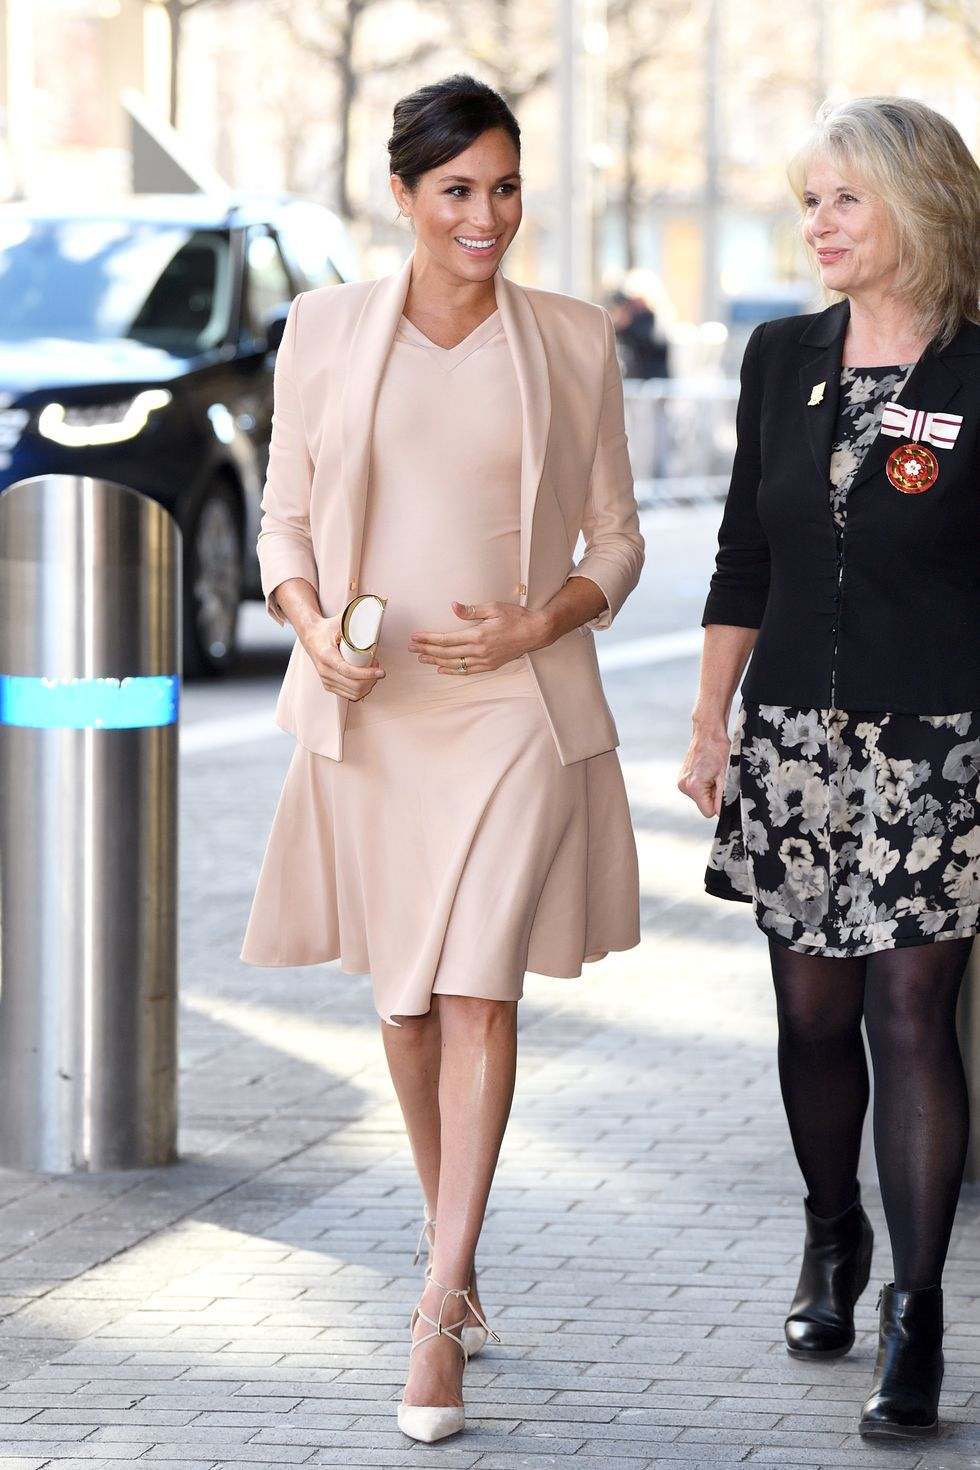 db344266e54cf Meghan Markle's Best Maternity Outfits - Duchess of Sussex's Chic Pregnant  Style